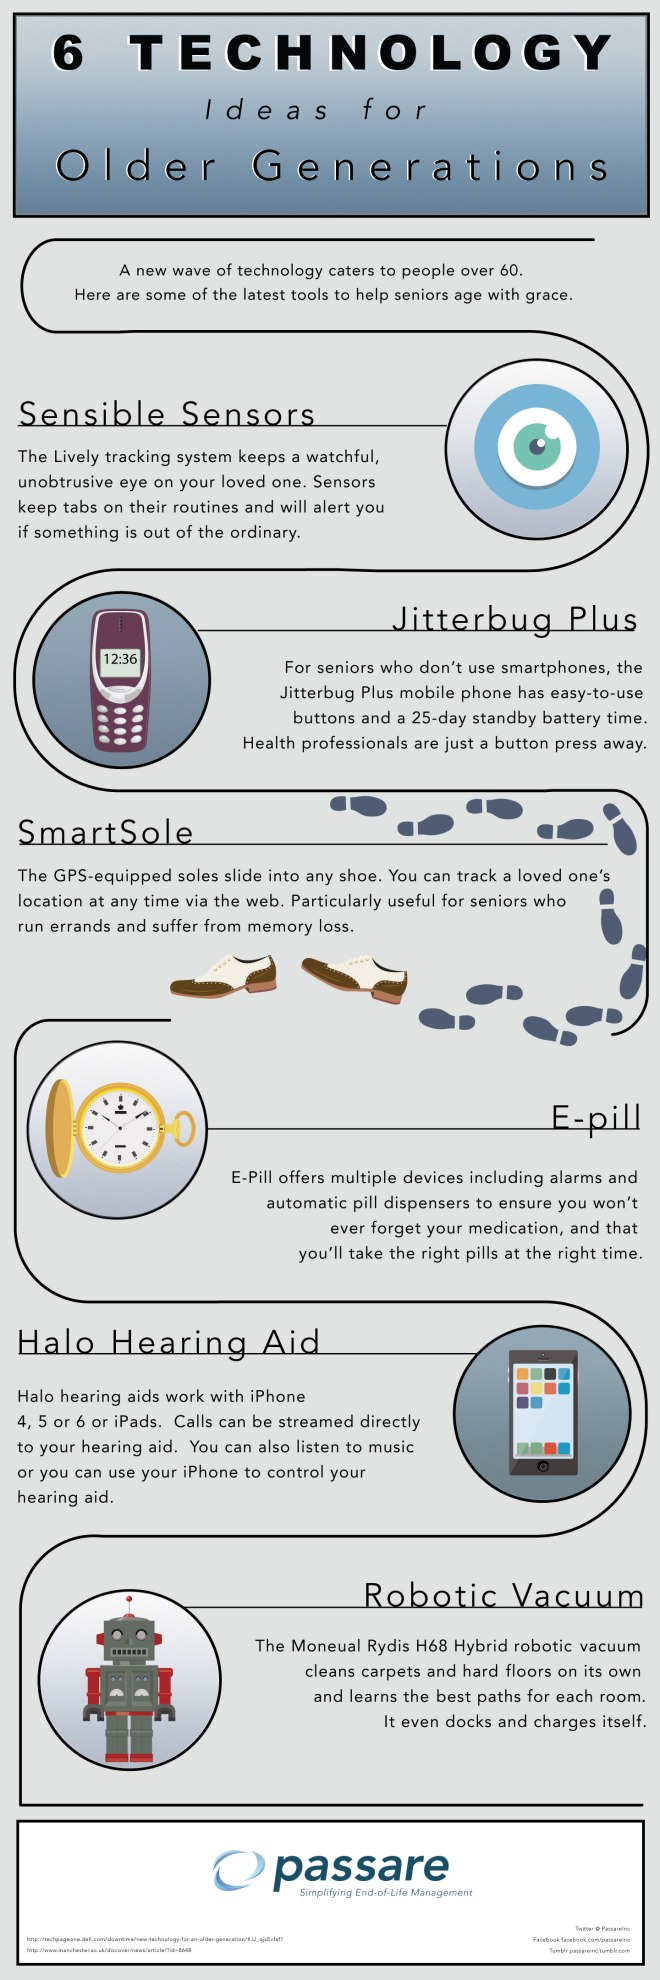 6-Technology-ideas-for-Older-Generations